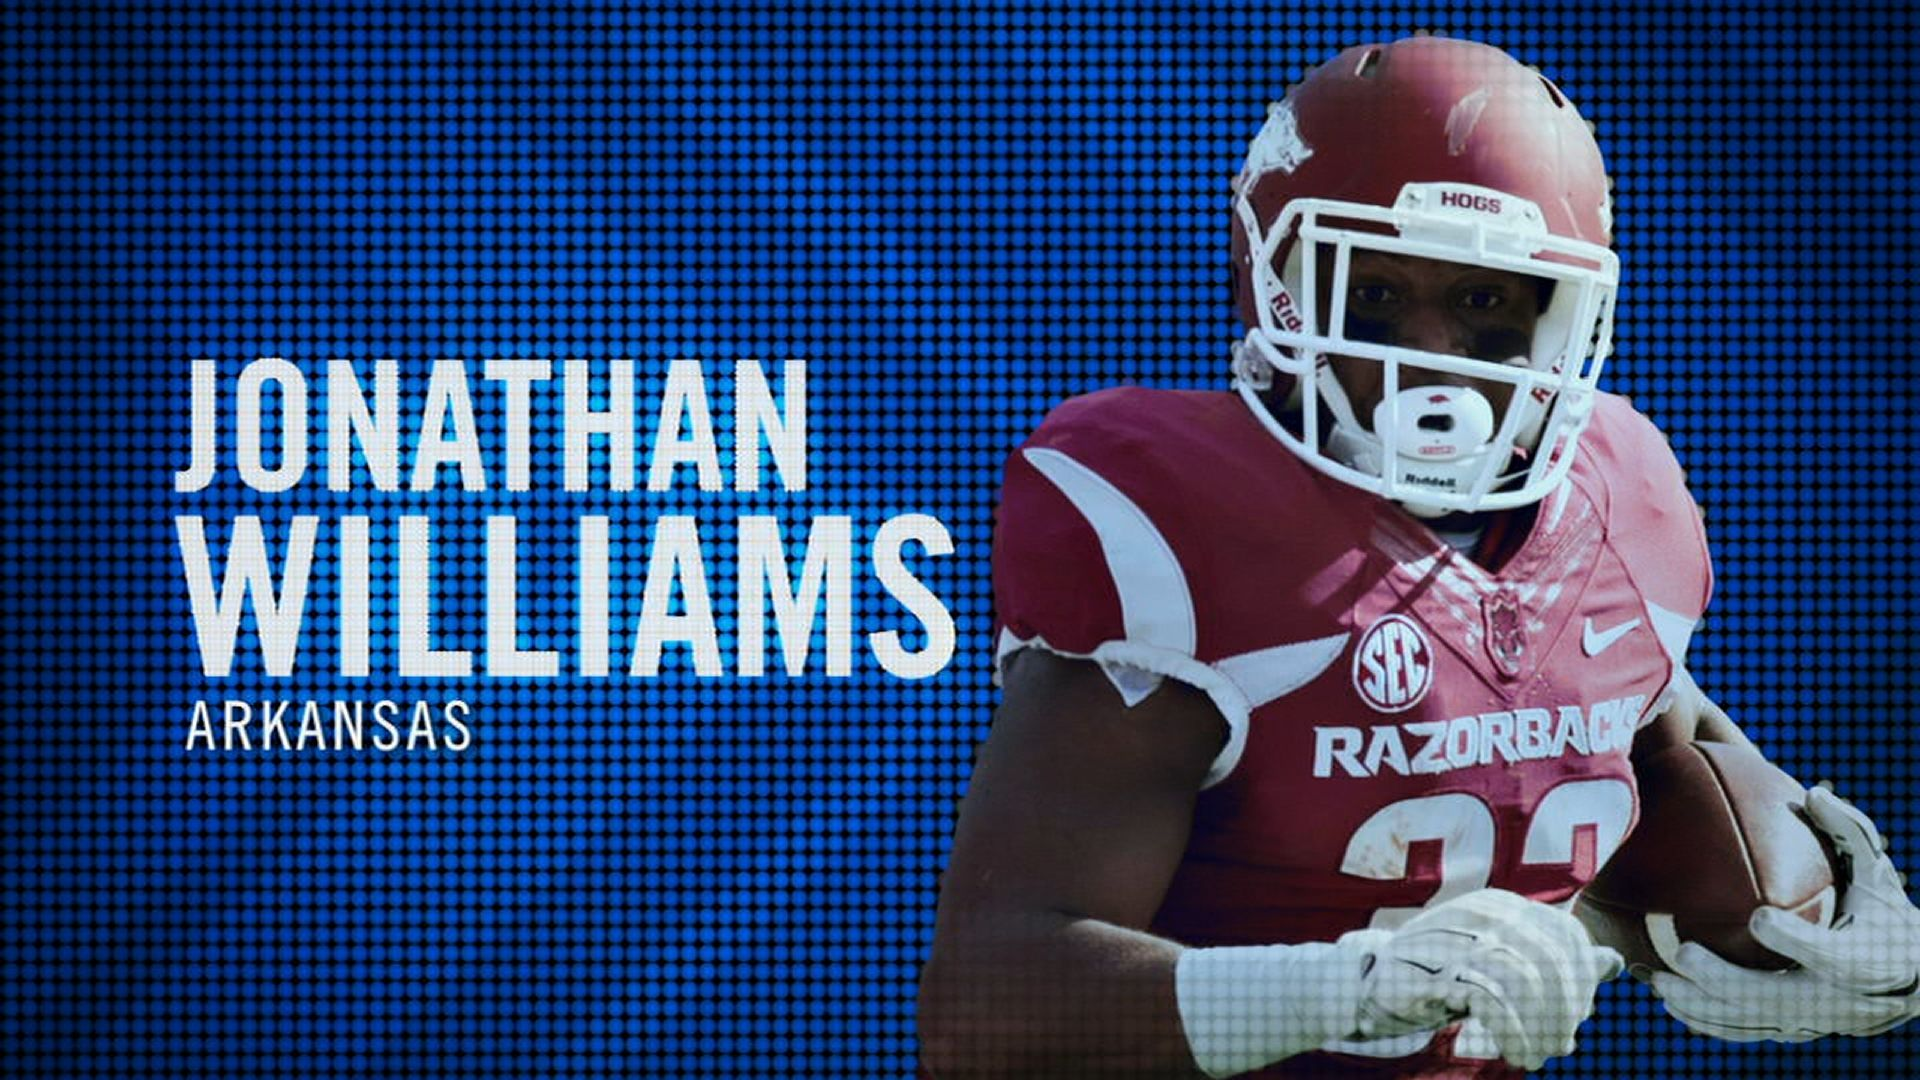 I am the SEC: Arkansas' Jonathan Williams